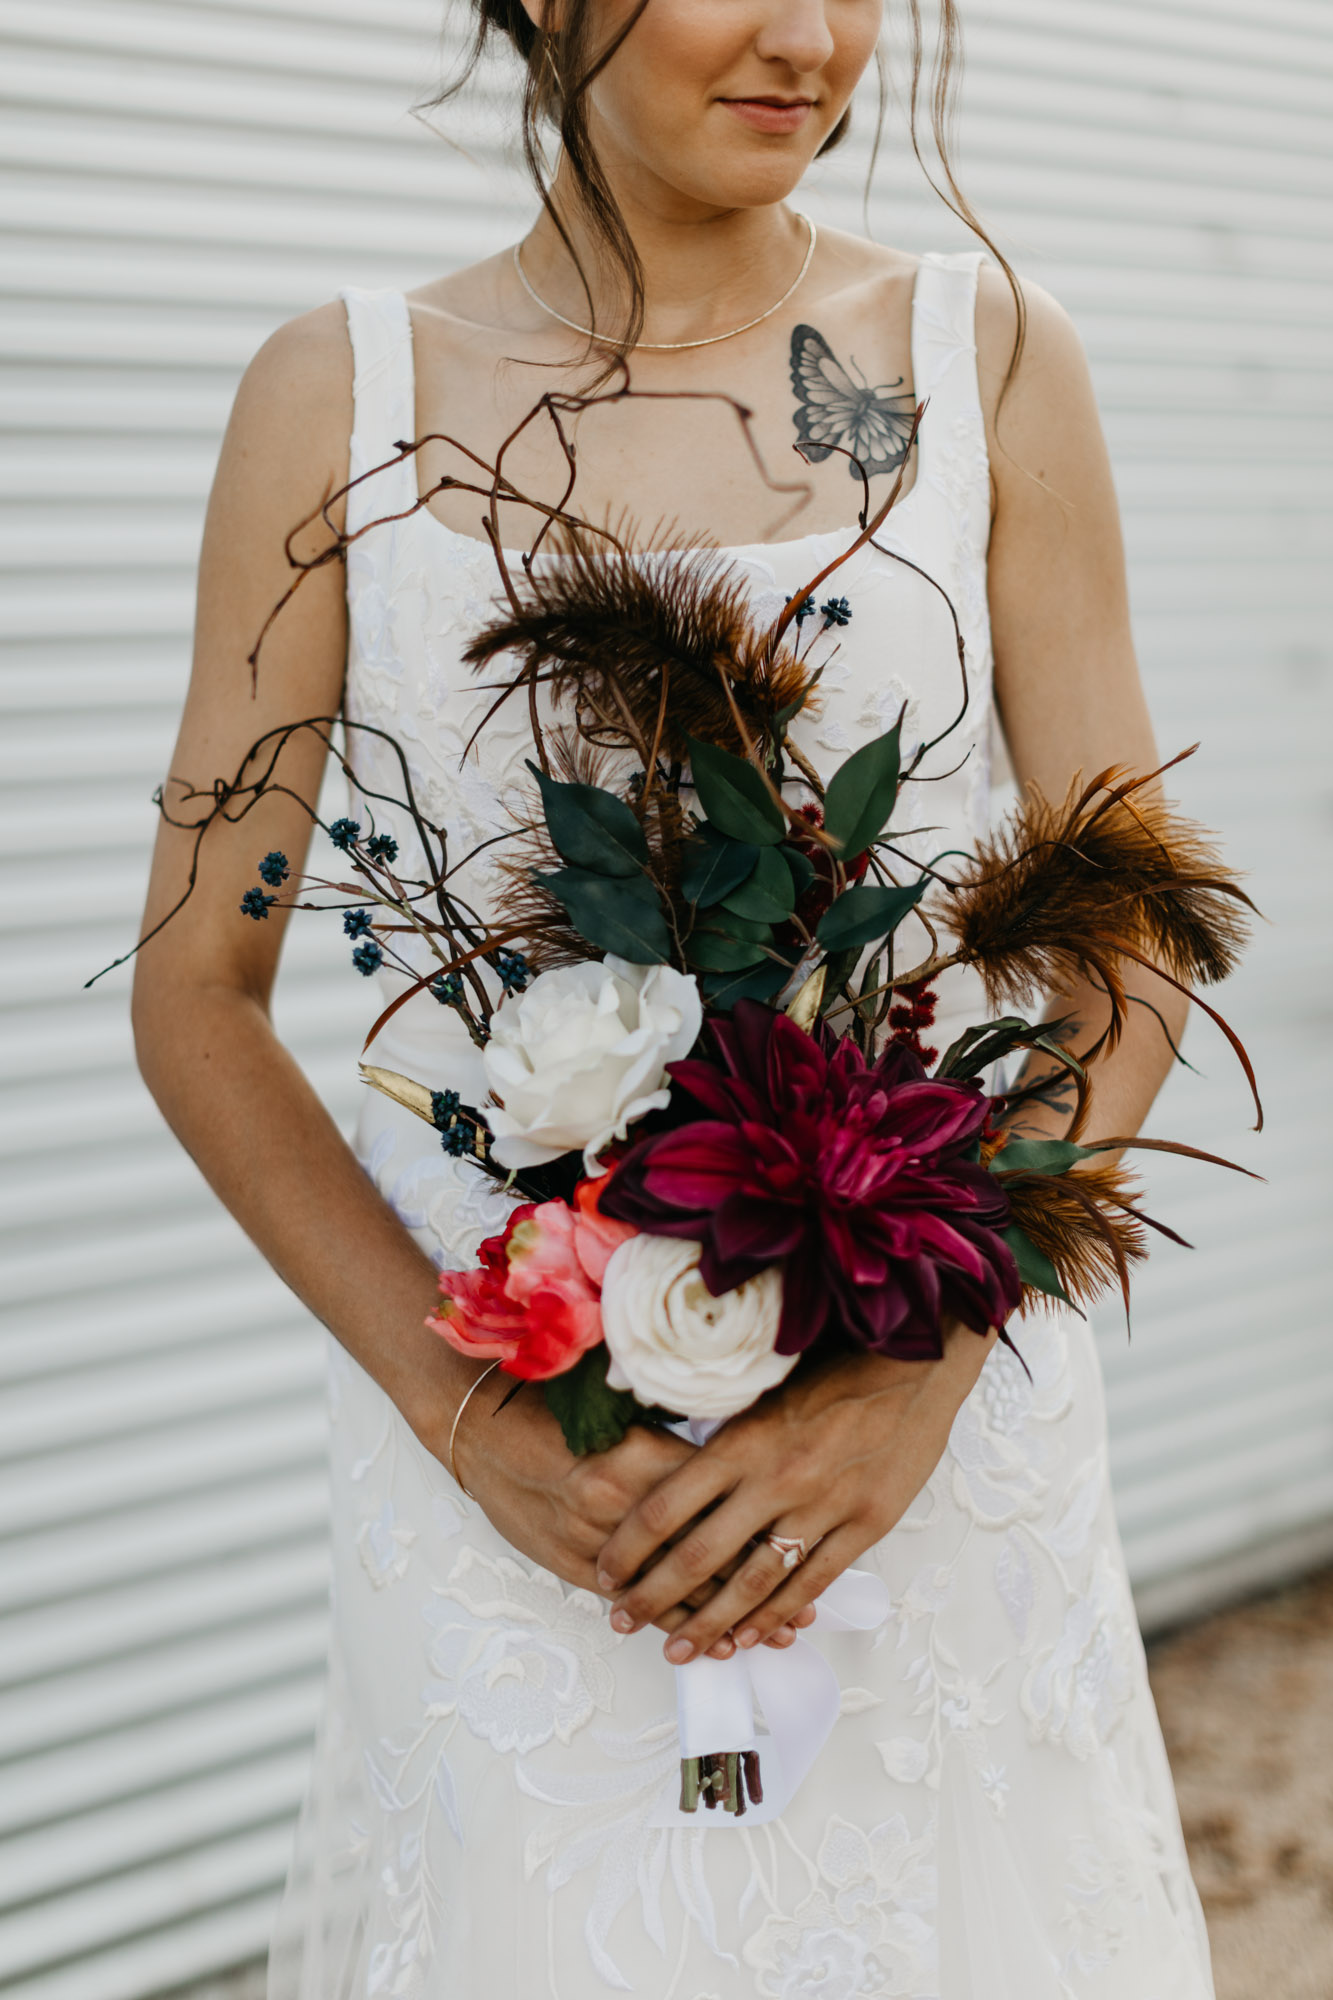 moody floral arrangement for wedding